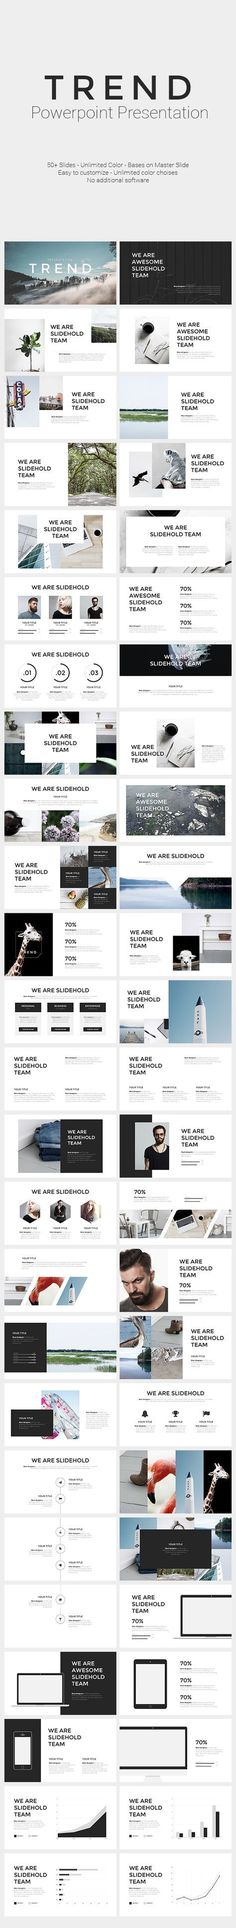 TREND   PowerPoint Template - #PowerPoint #Templates Presentation Templates Download here: https://graphicriver.net/item/trend-powerpoint-template/19442944?ref=alena994